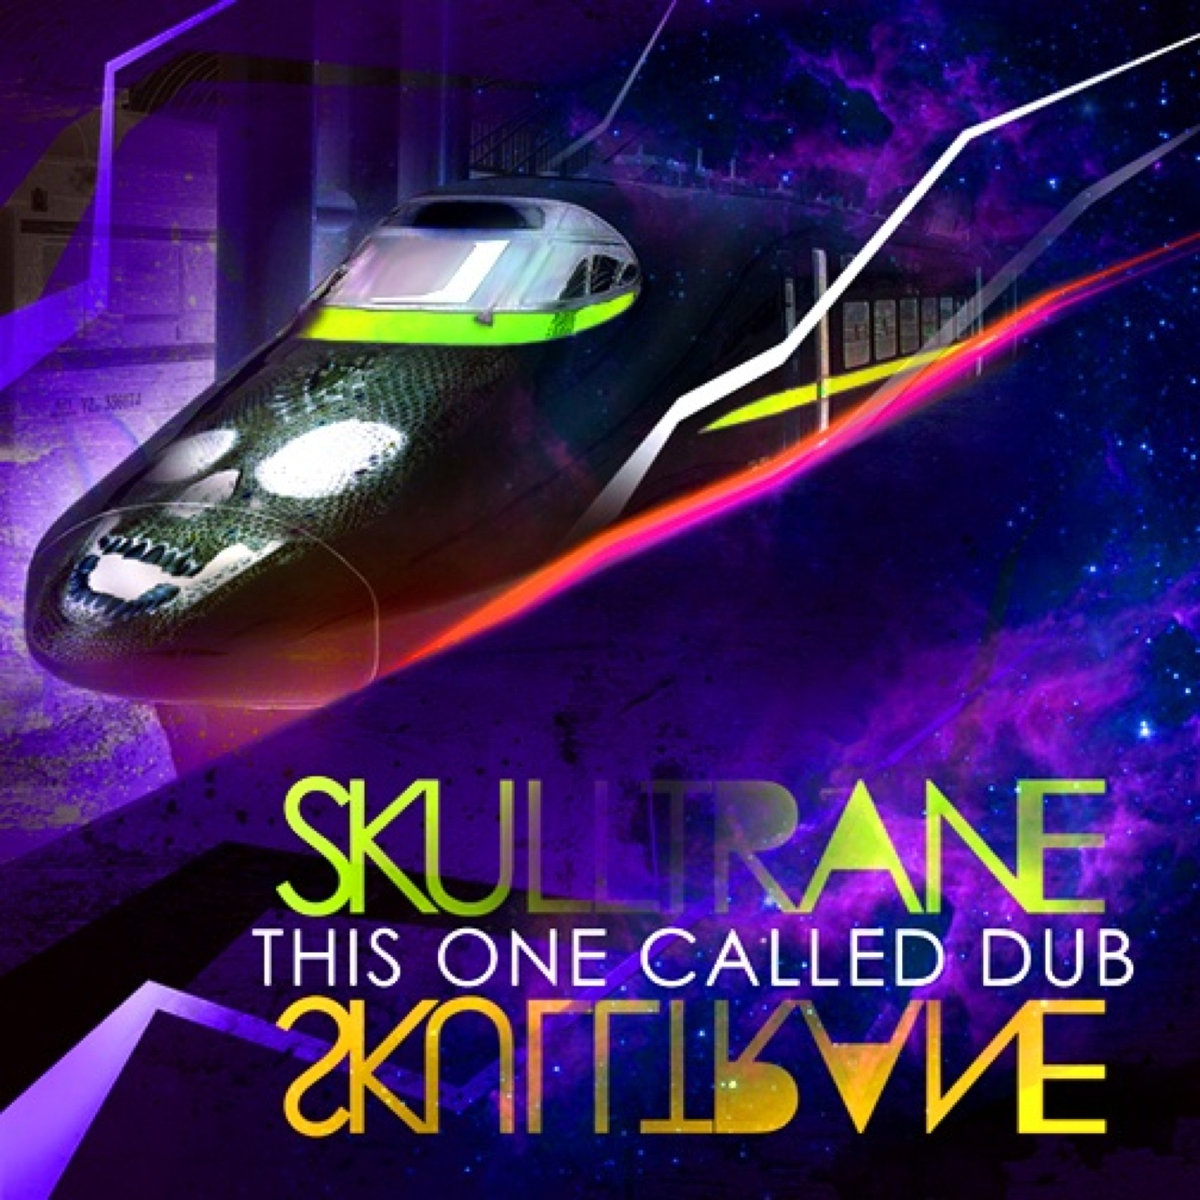 Skulltrane - This One Called Dub